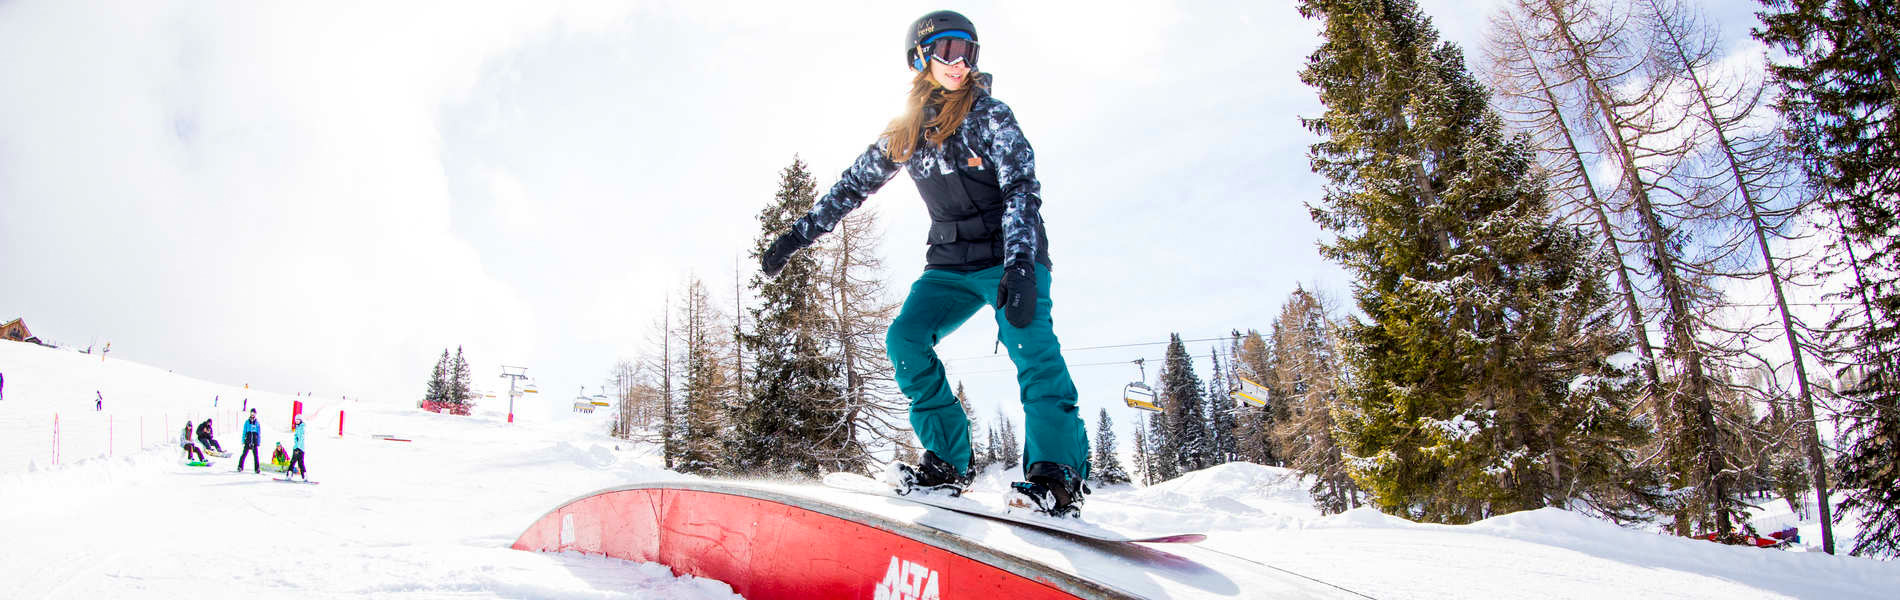 Dolce Vita? No! – Ausgiebige Park-Action bei der Girls Shred Session Alta Badia